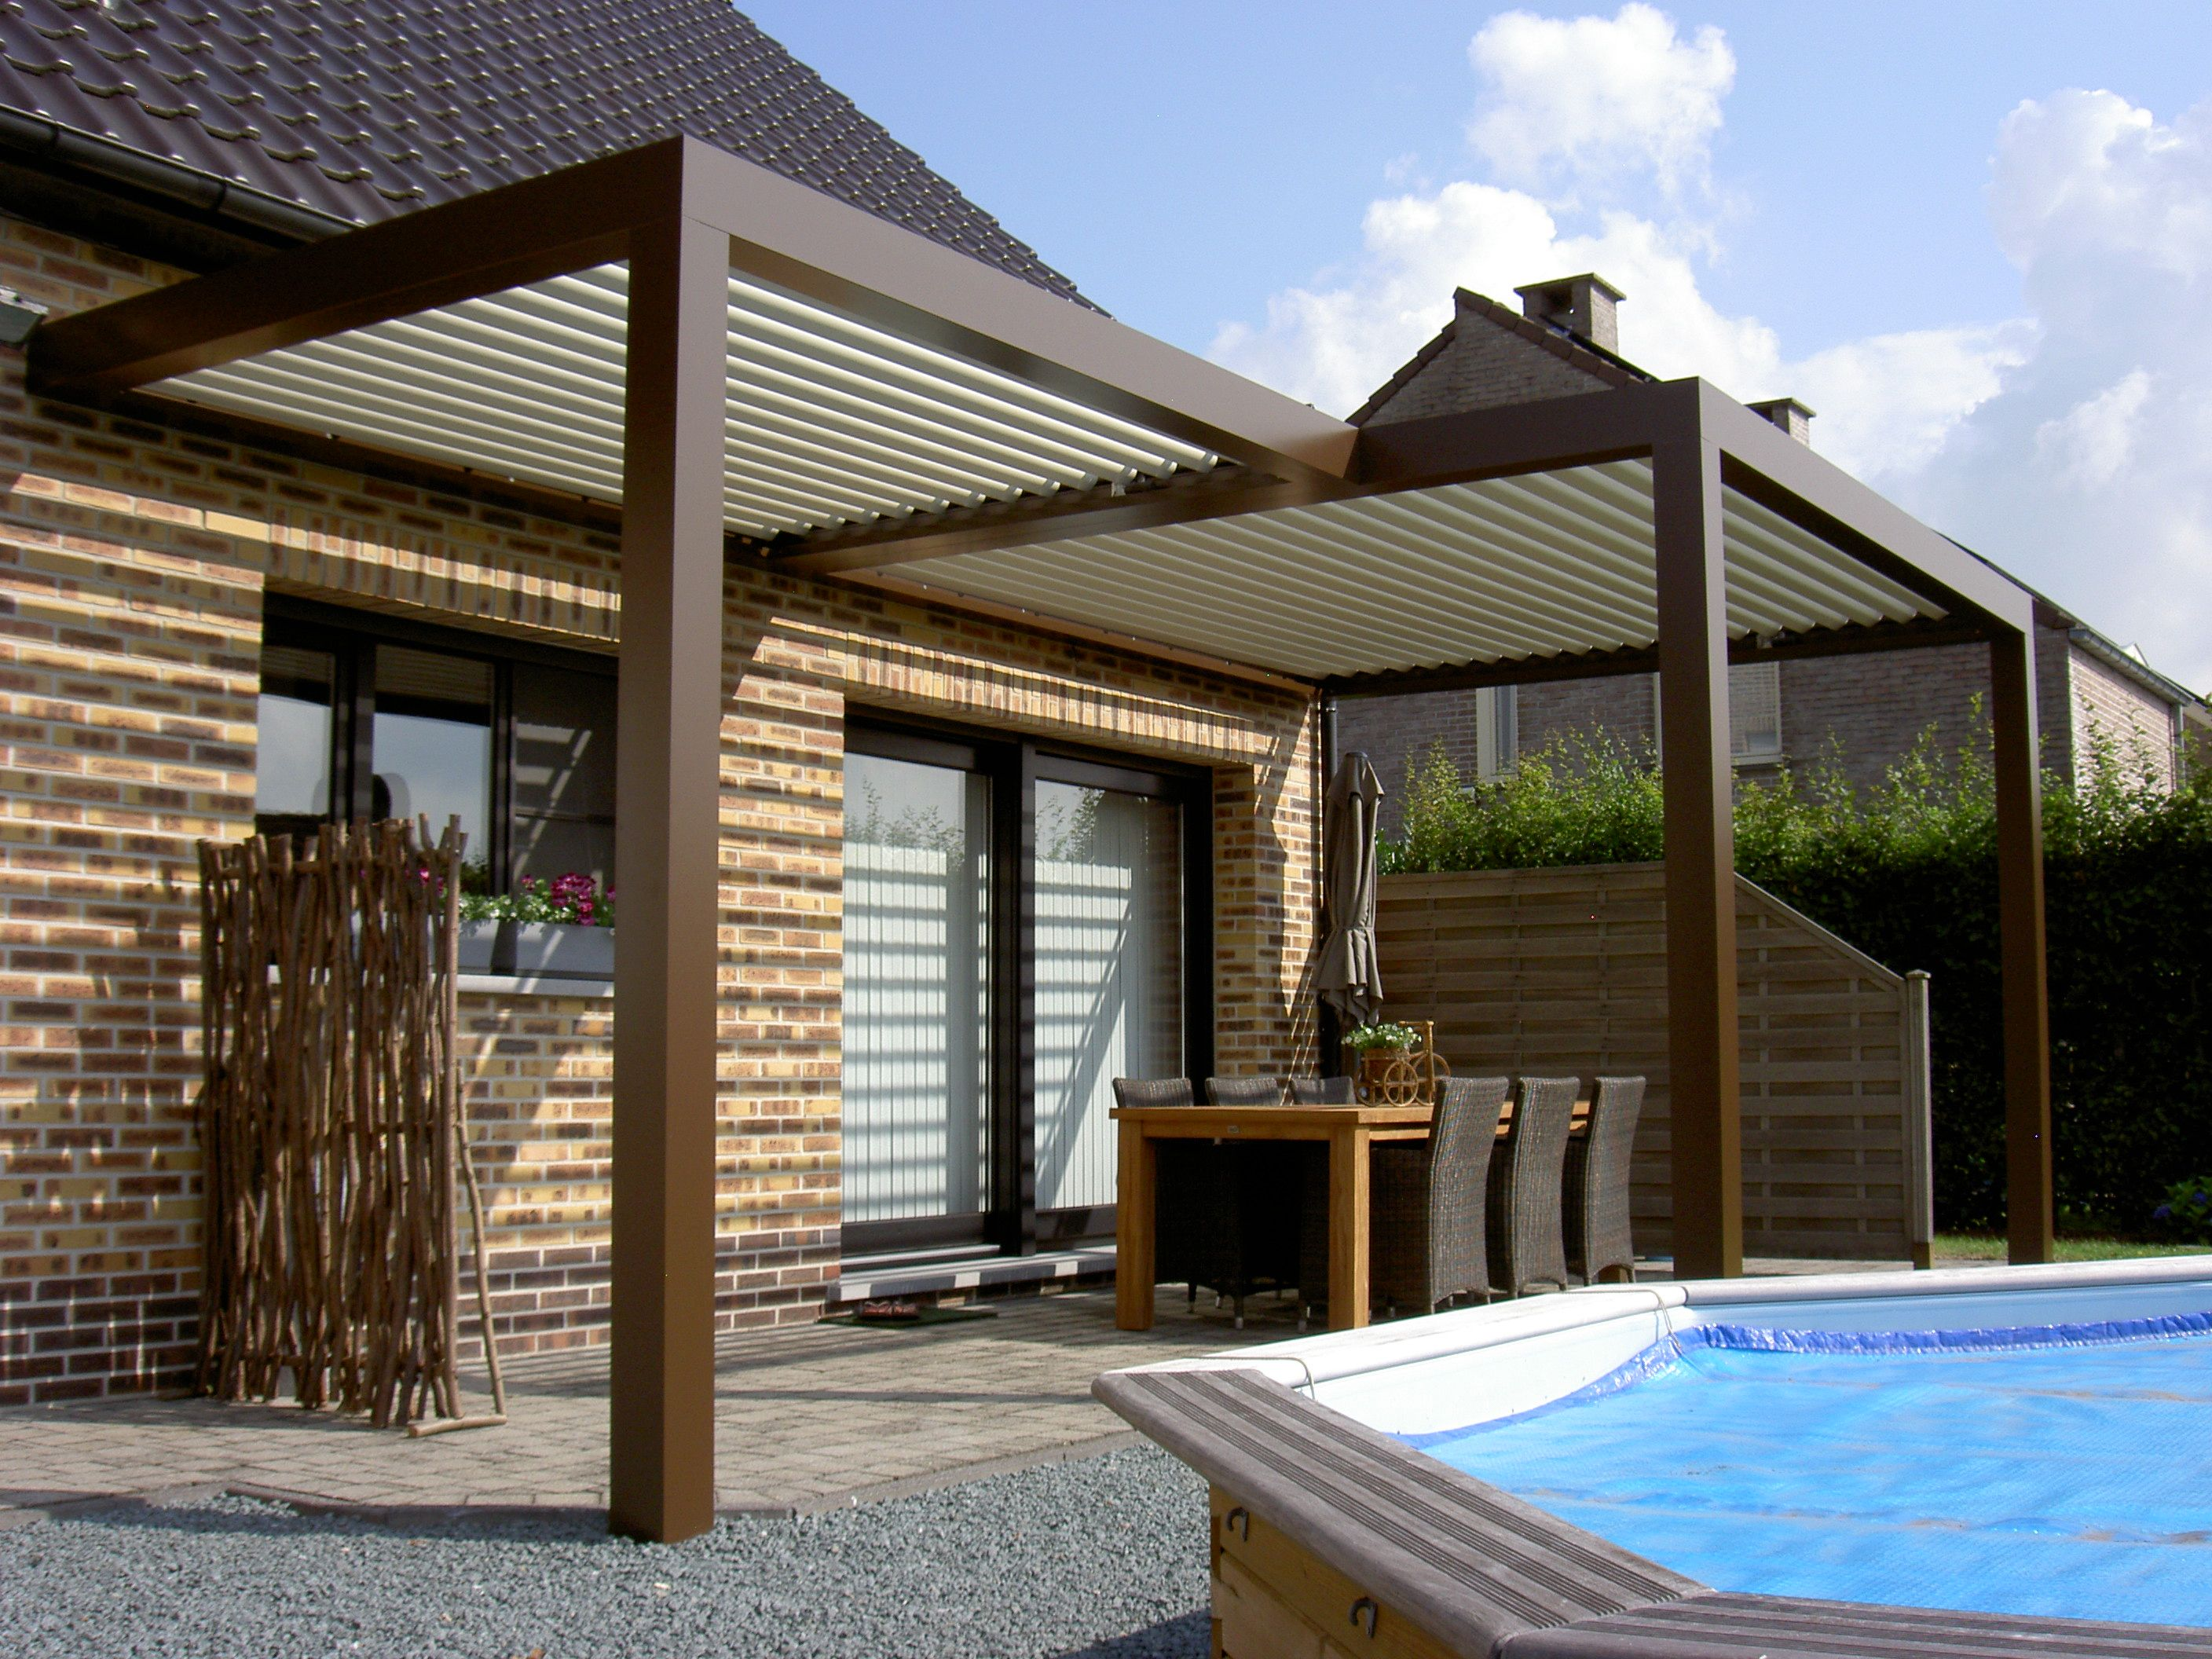 biossun benelux project terrasoverkapping pergola. Black Bedroom Furniture Sets. Home Design Ideas